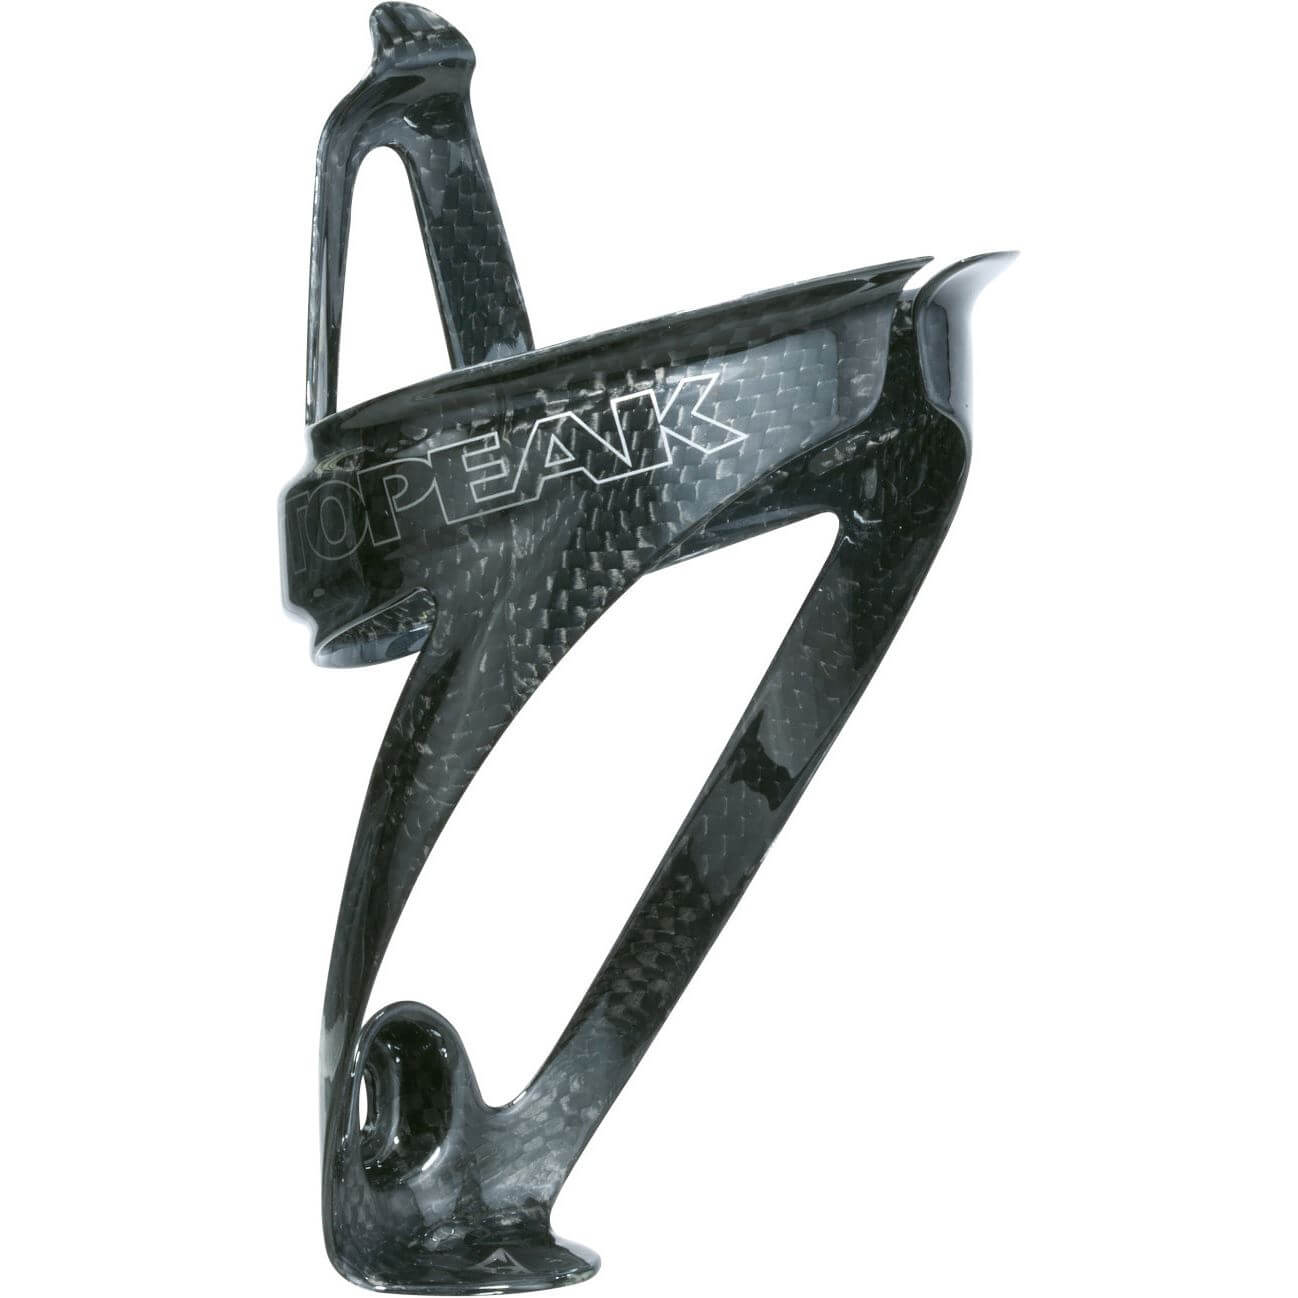 Topeak Bottle Cage Shuttle Cage Carbon